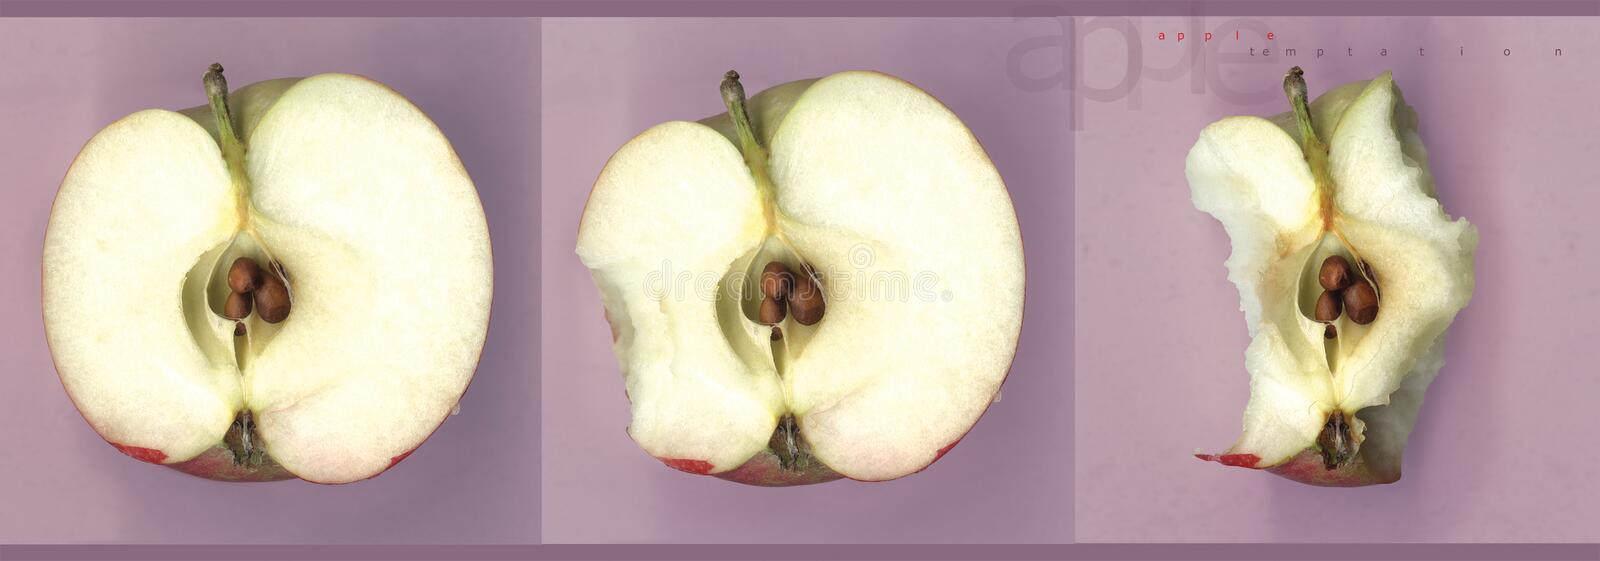 Download Apple Temptation stock image. Image of apple, seeds, healthy - 198797